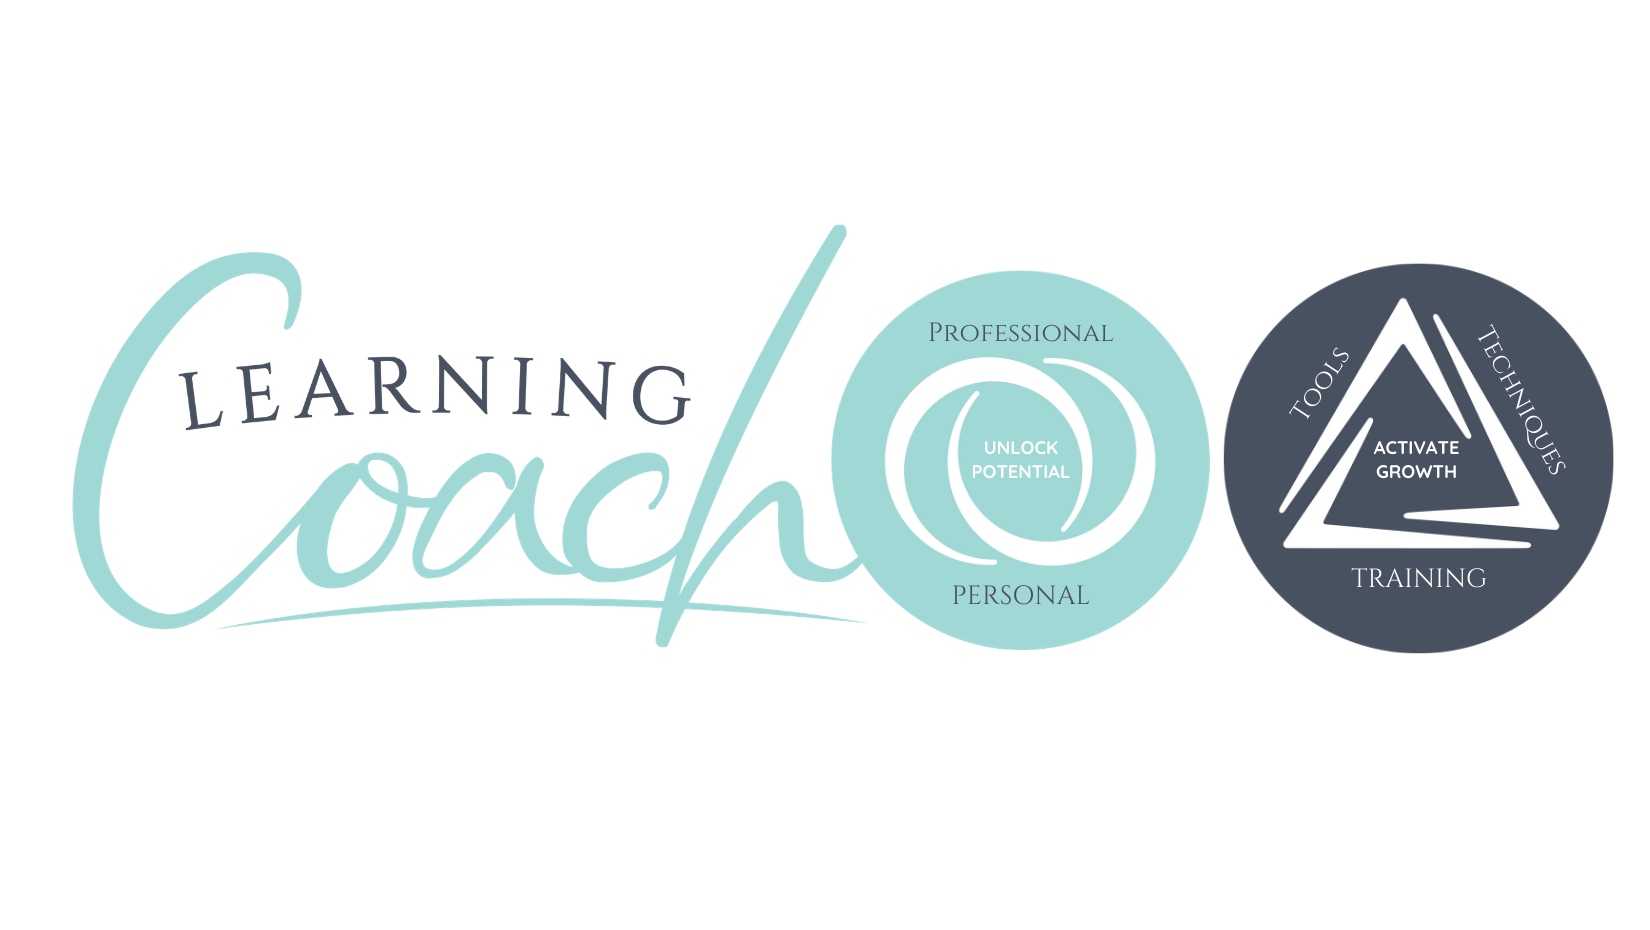 unlock growth in people. Learning Coach